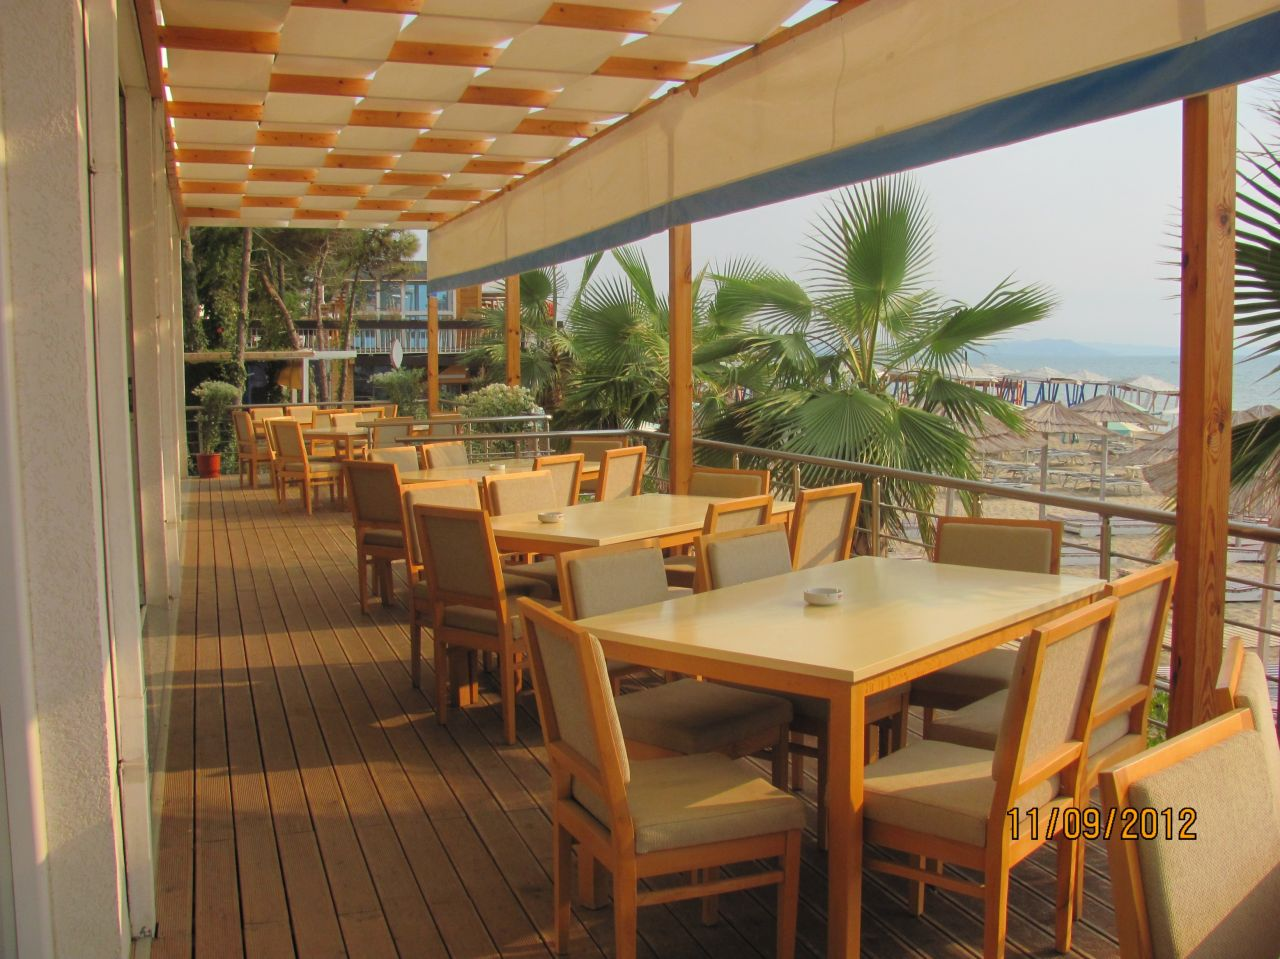 best holiday area in durres beach with perfect sandy beach that stretches for approx 20 km